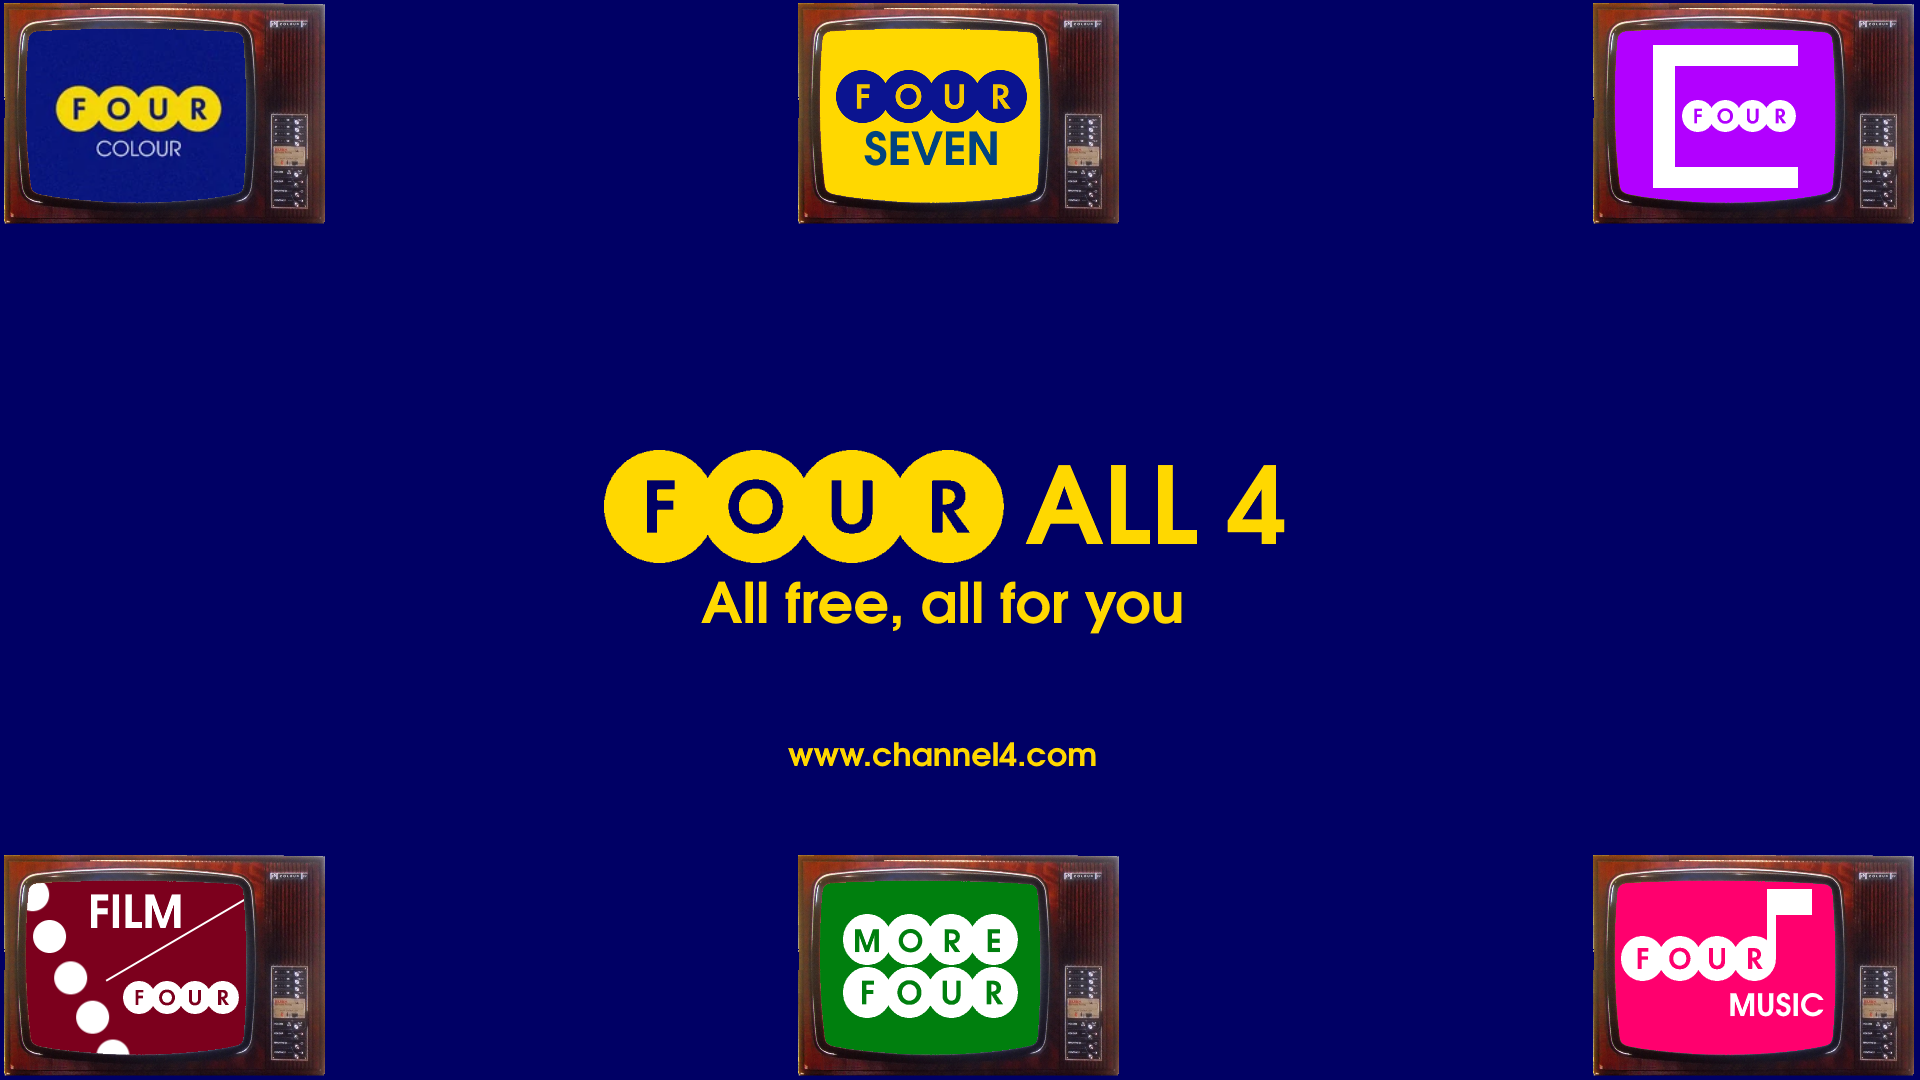 All 4